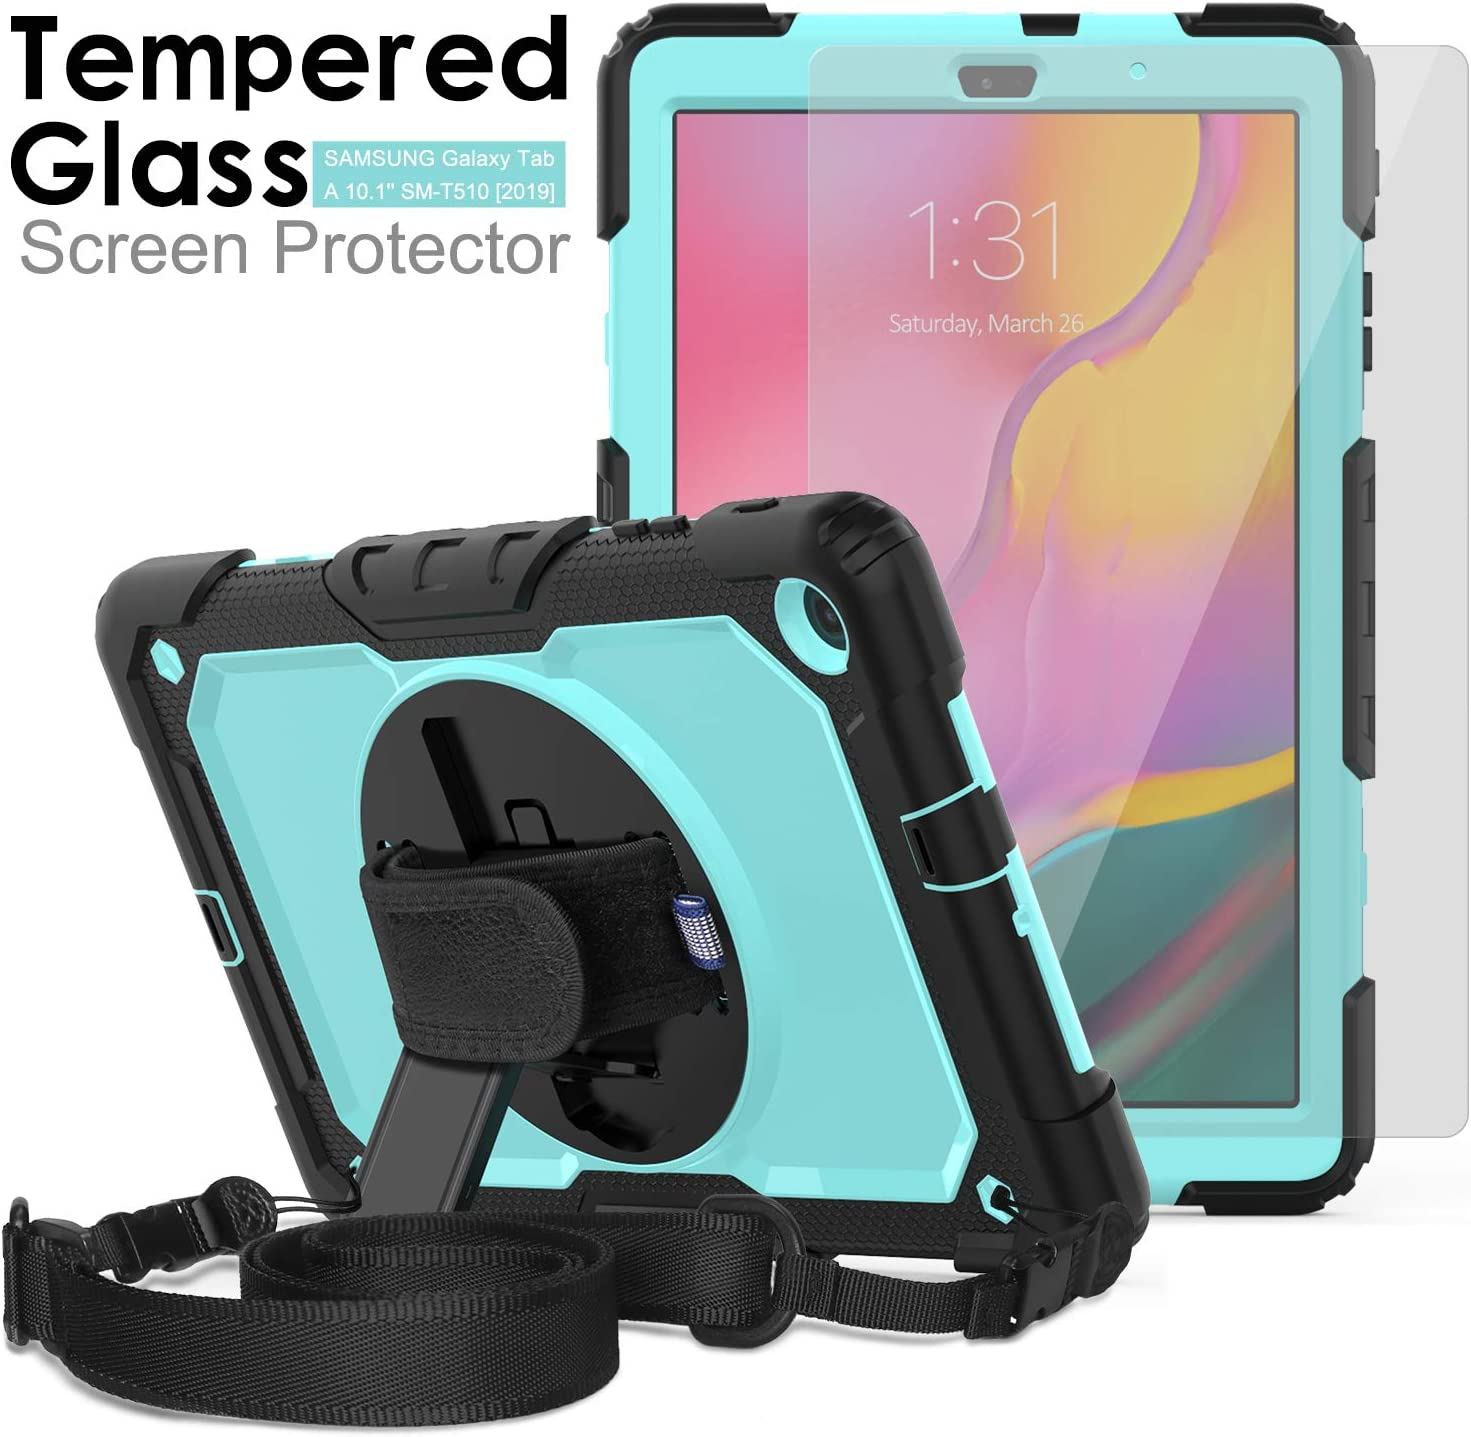 Samsung Galaxy Tab A 10.1 T510/T515 Case 2019, [Removable Shoulder Strap] Ambison Full Body Protective Case with Tempered Glass Screen Protector, Rotatable Kickstand & Hand Strap (Sky Blue & Black)